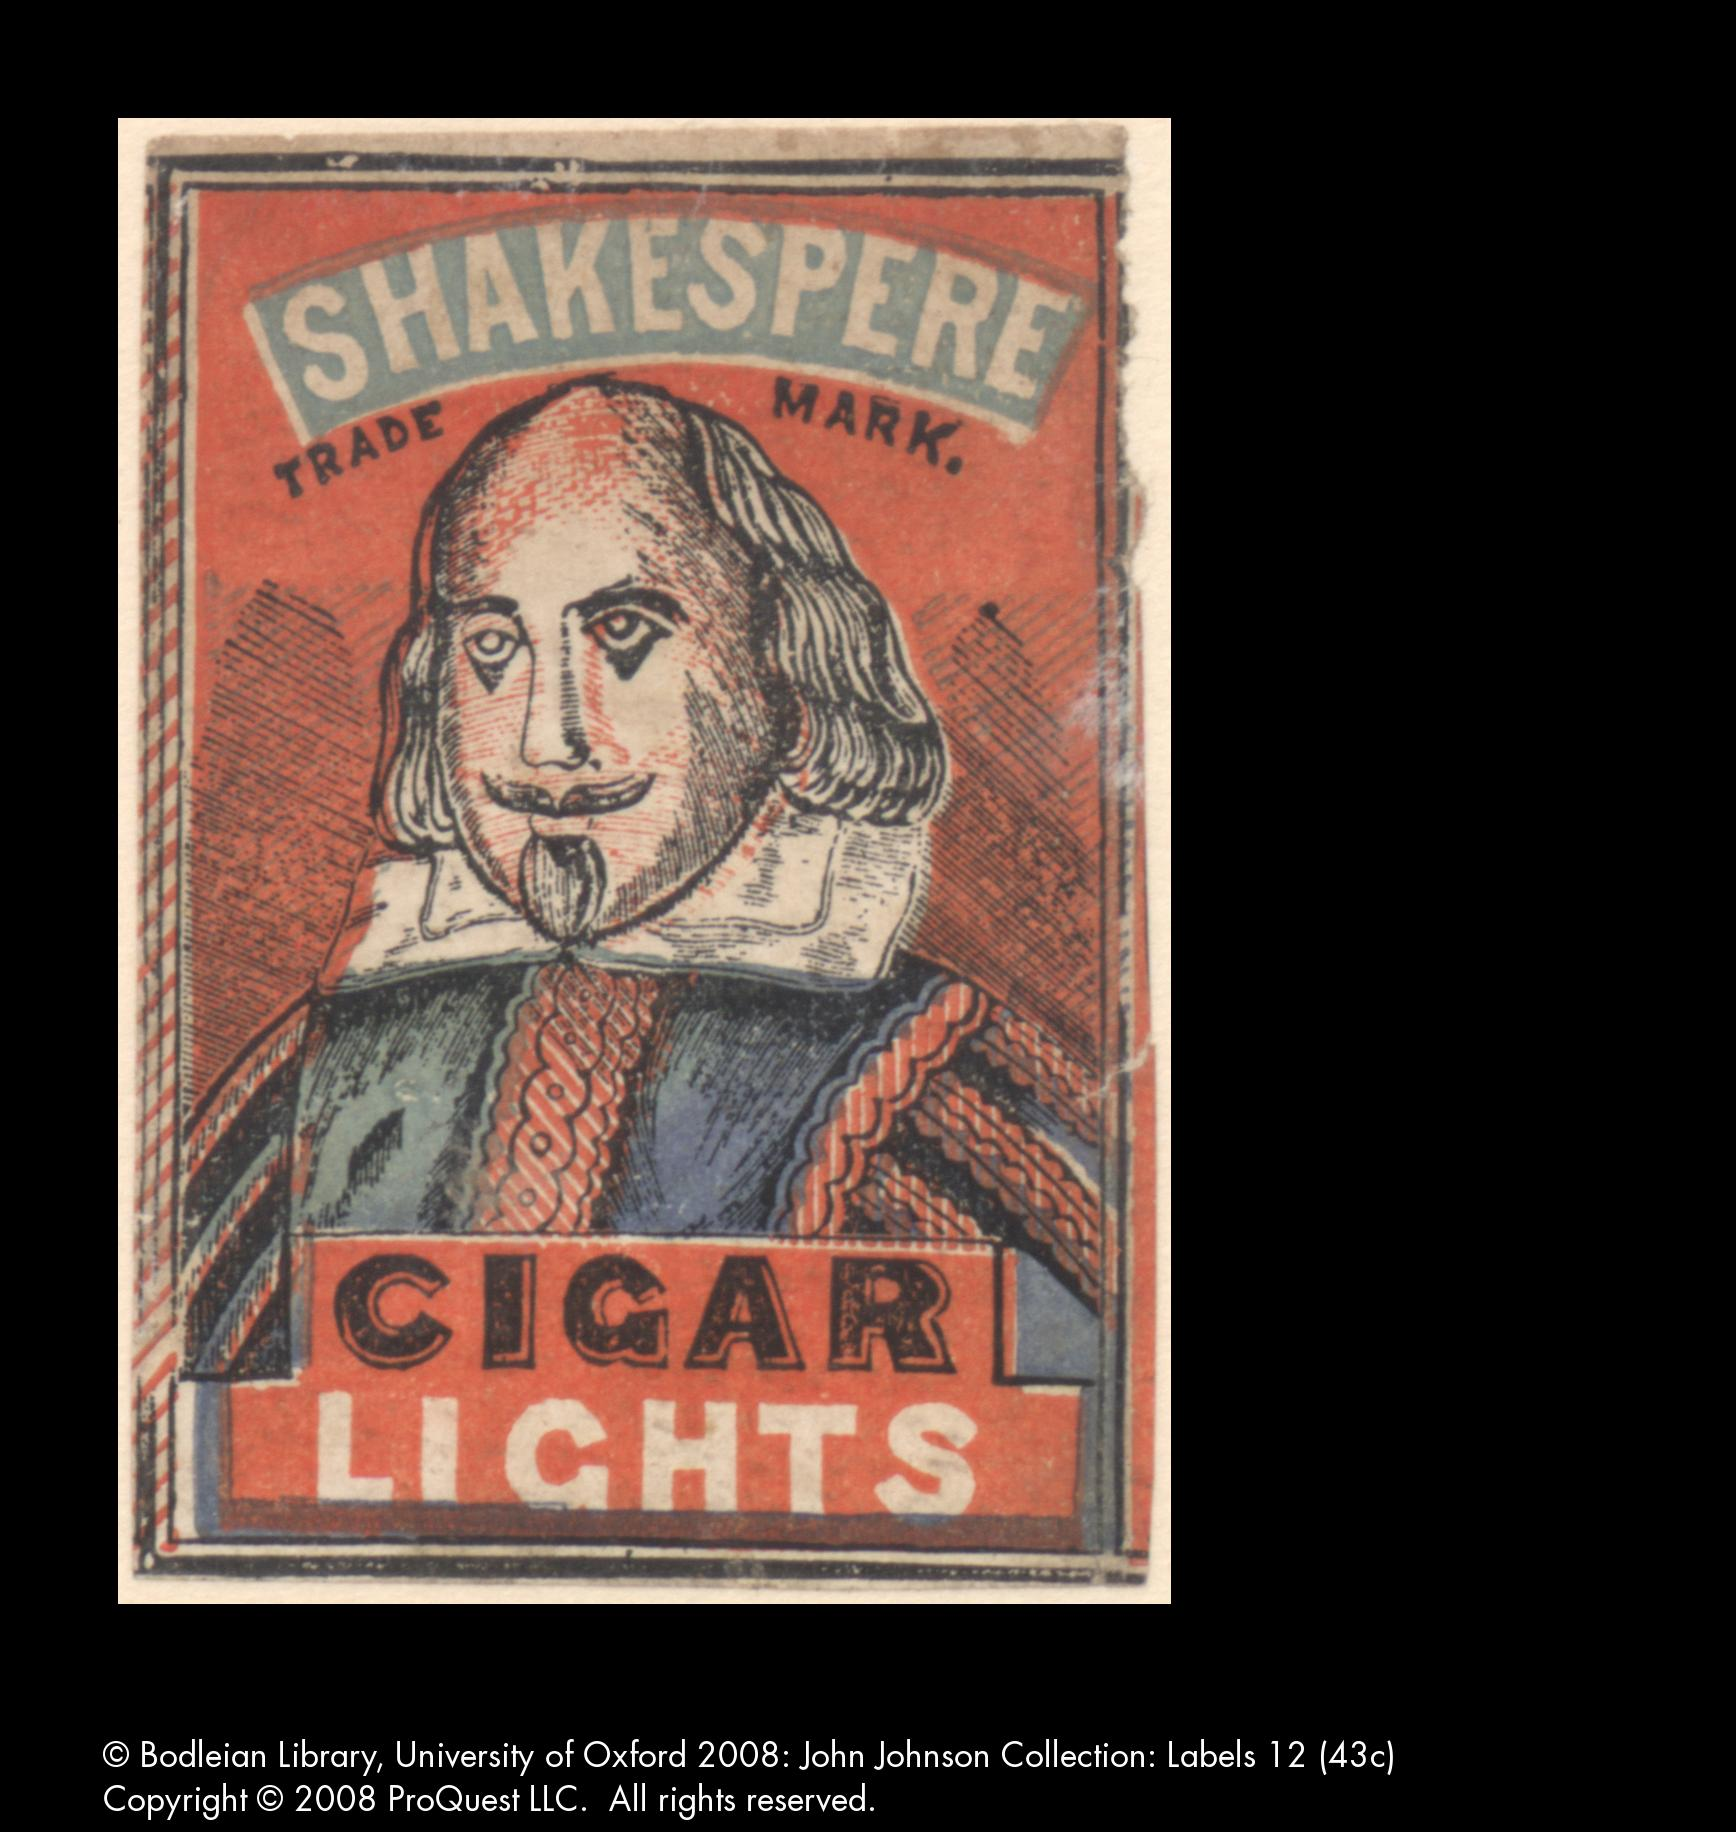 Shakespeare cigar lights